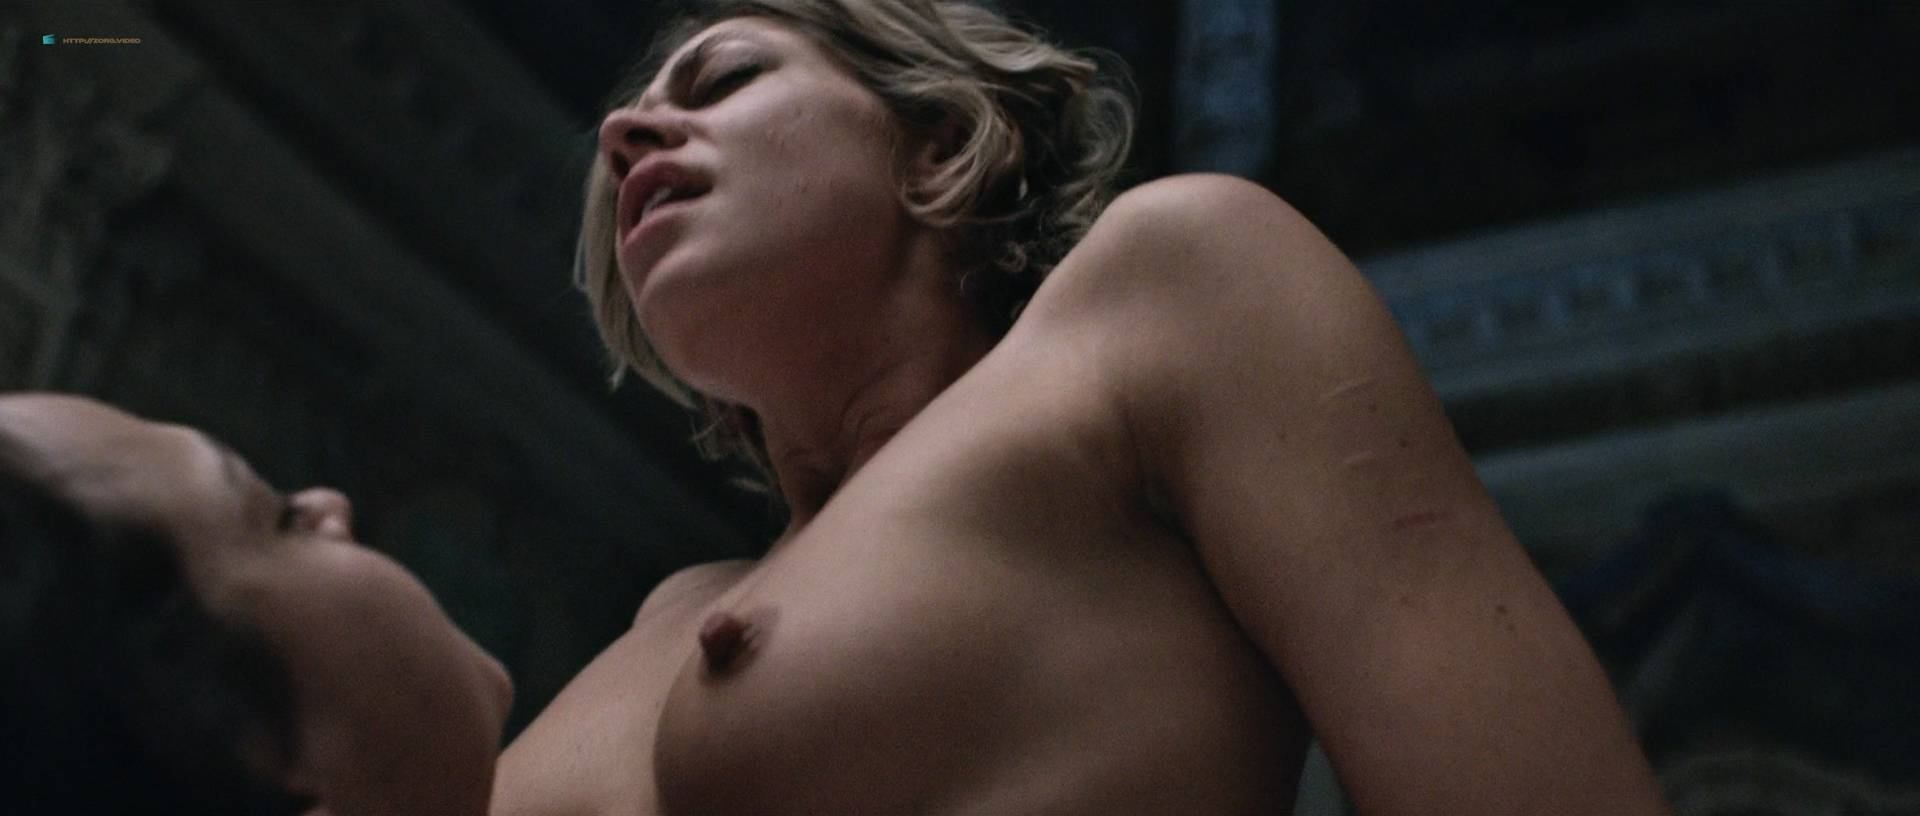 Are Analeigh tipton having naked sex your